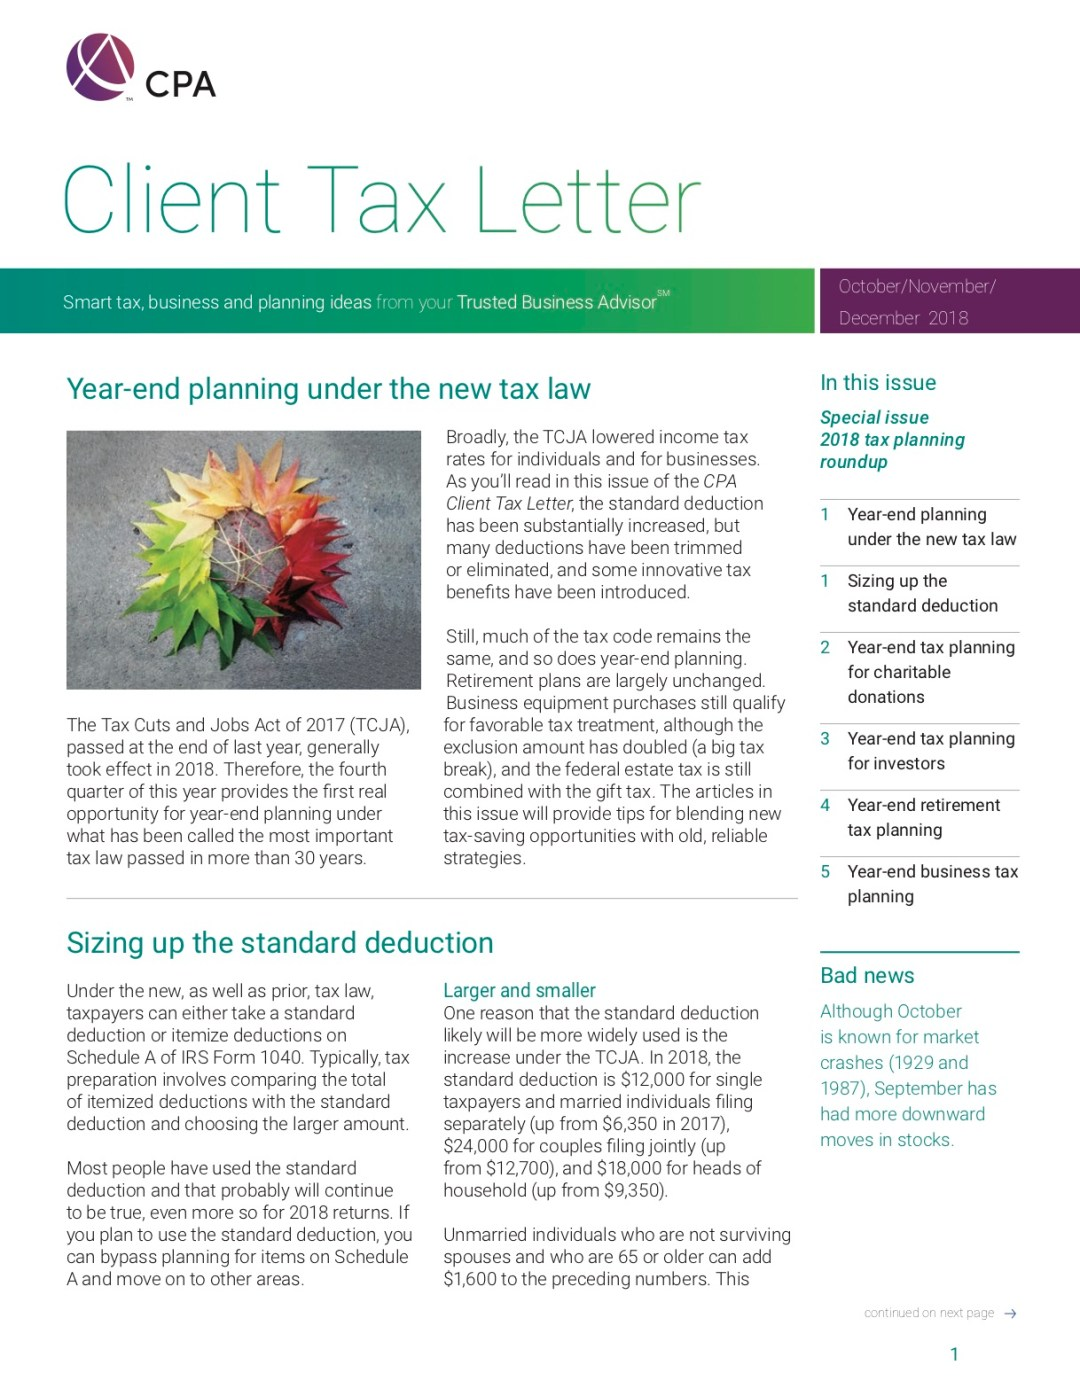 tax planning, standard deduction, charitable donations